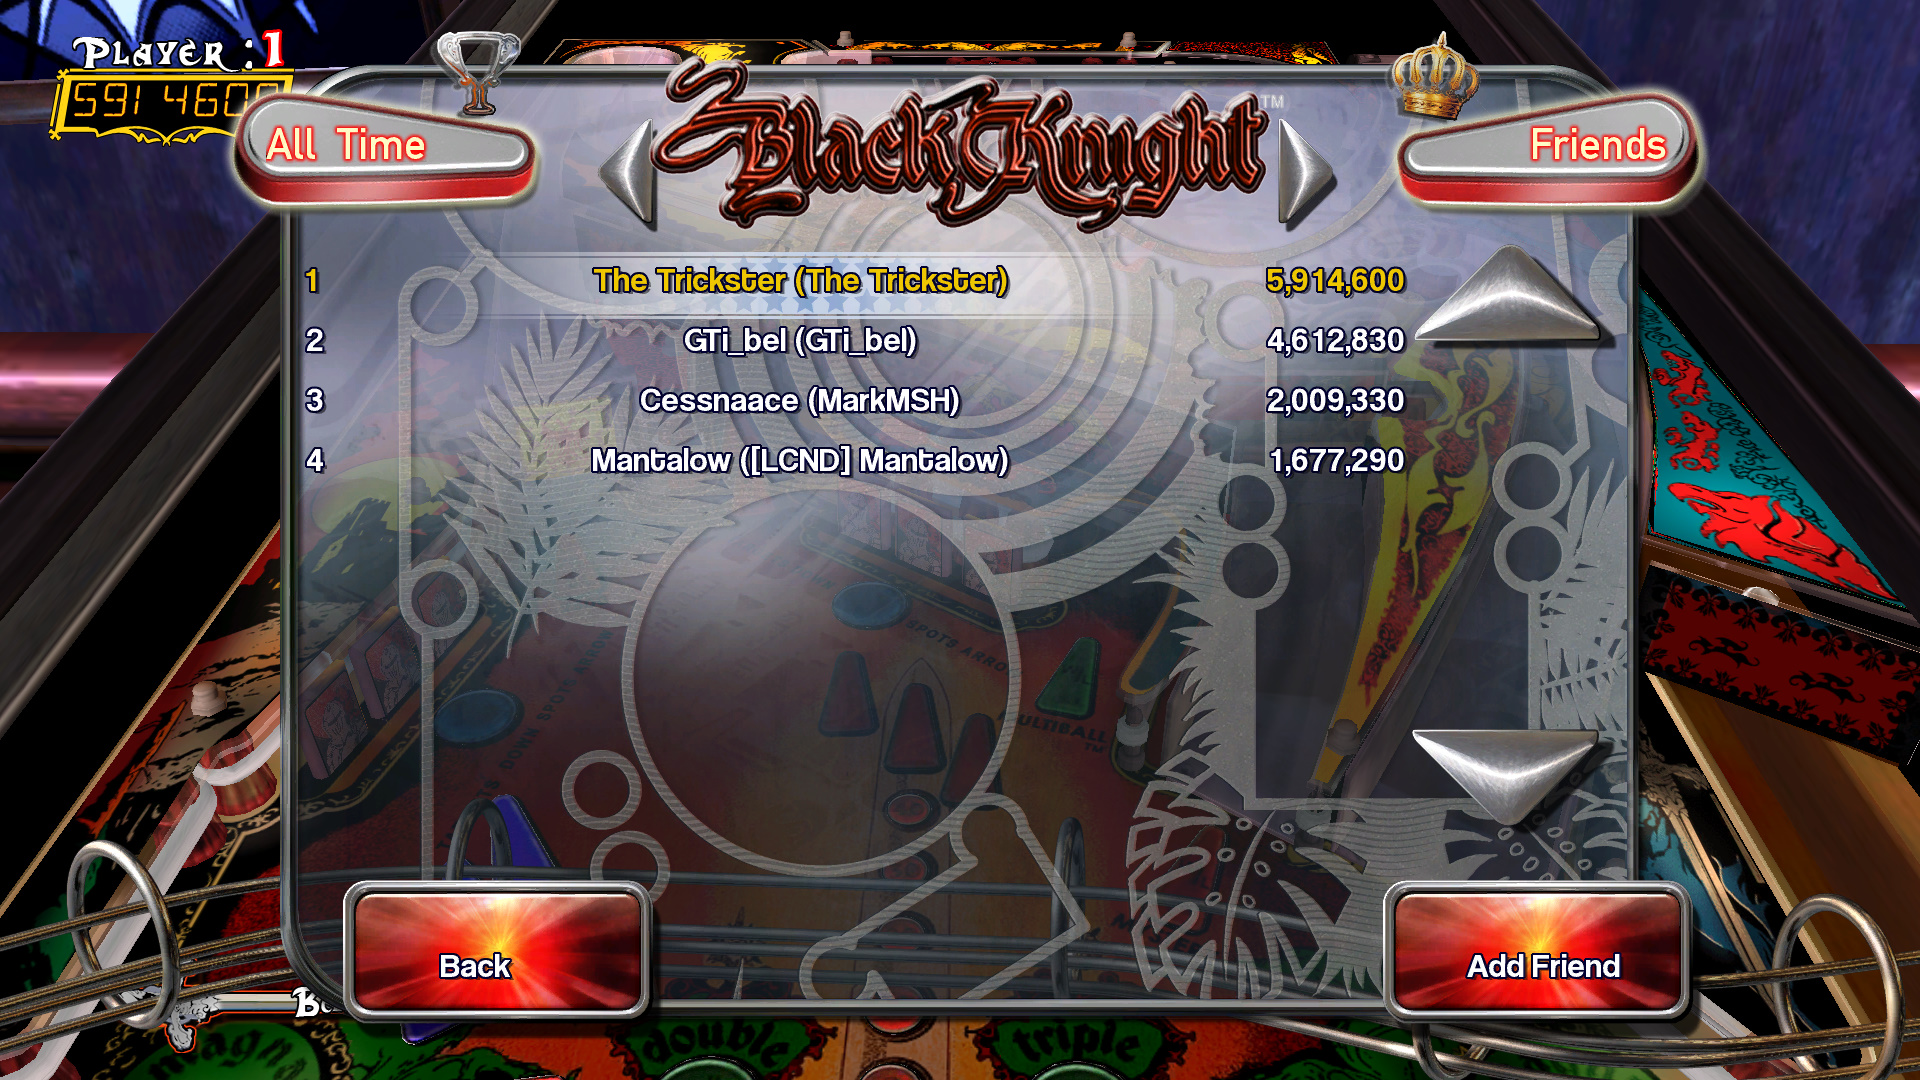 TheTrickster: Pinball Arcade: Black Knight (PC) 5,914,600 points on 2015-09-12 21:45:55